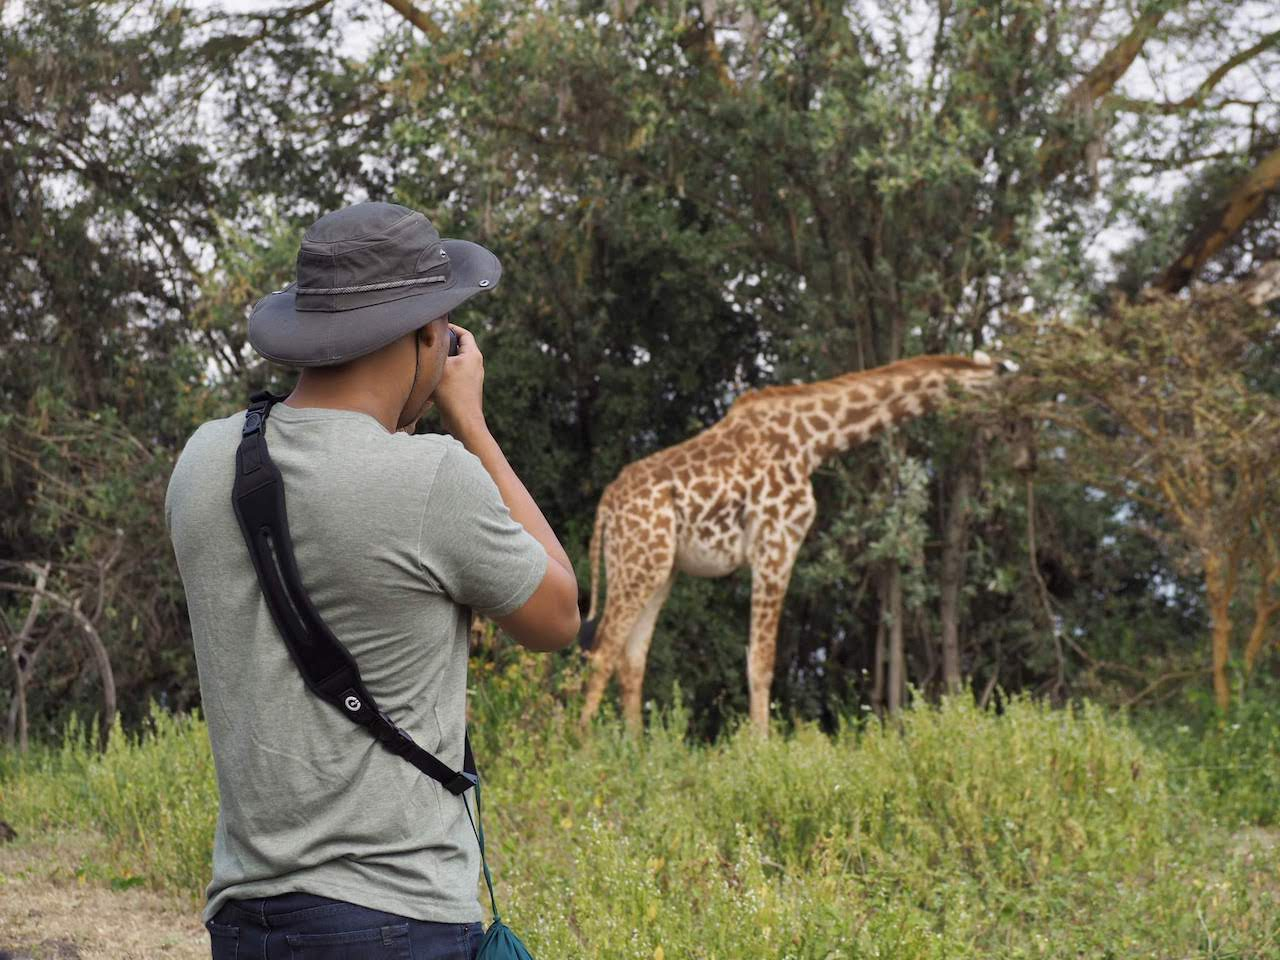 One traveller photographs a giraffe in the distance on Crescent Island.